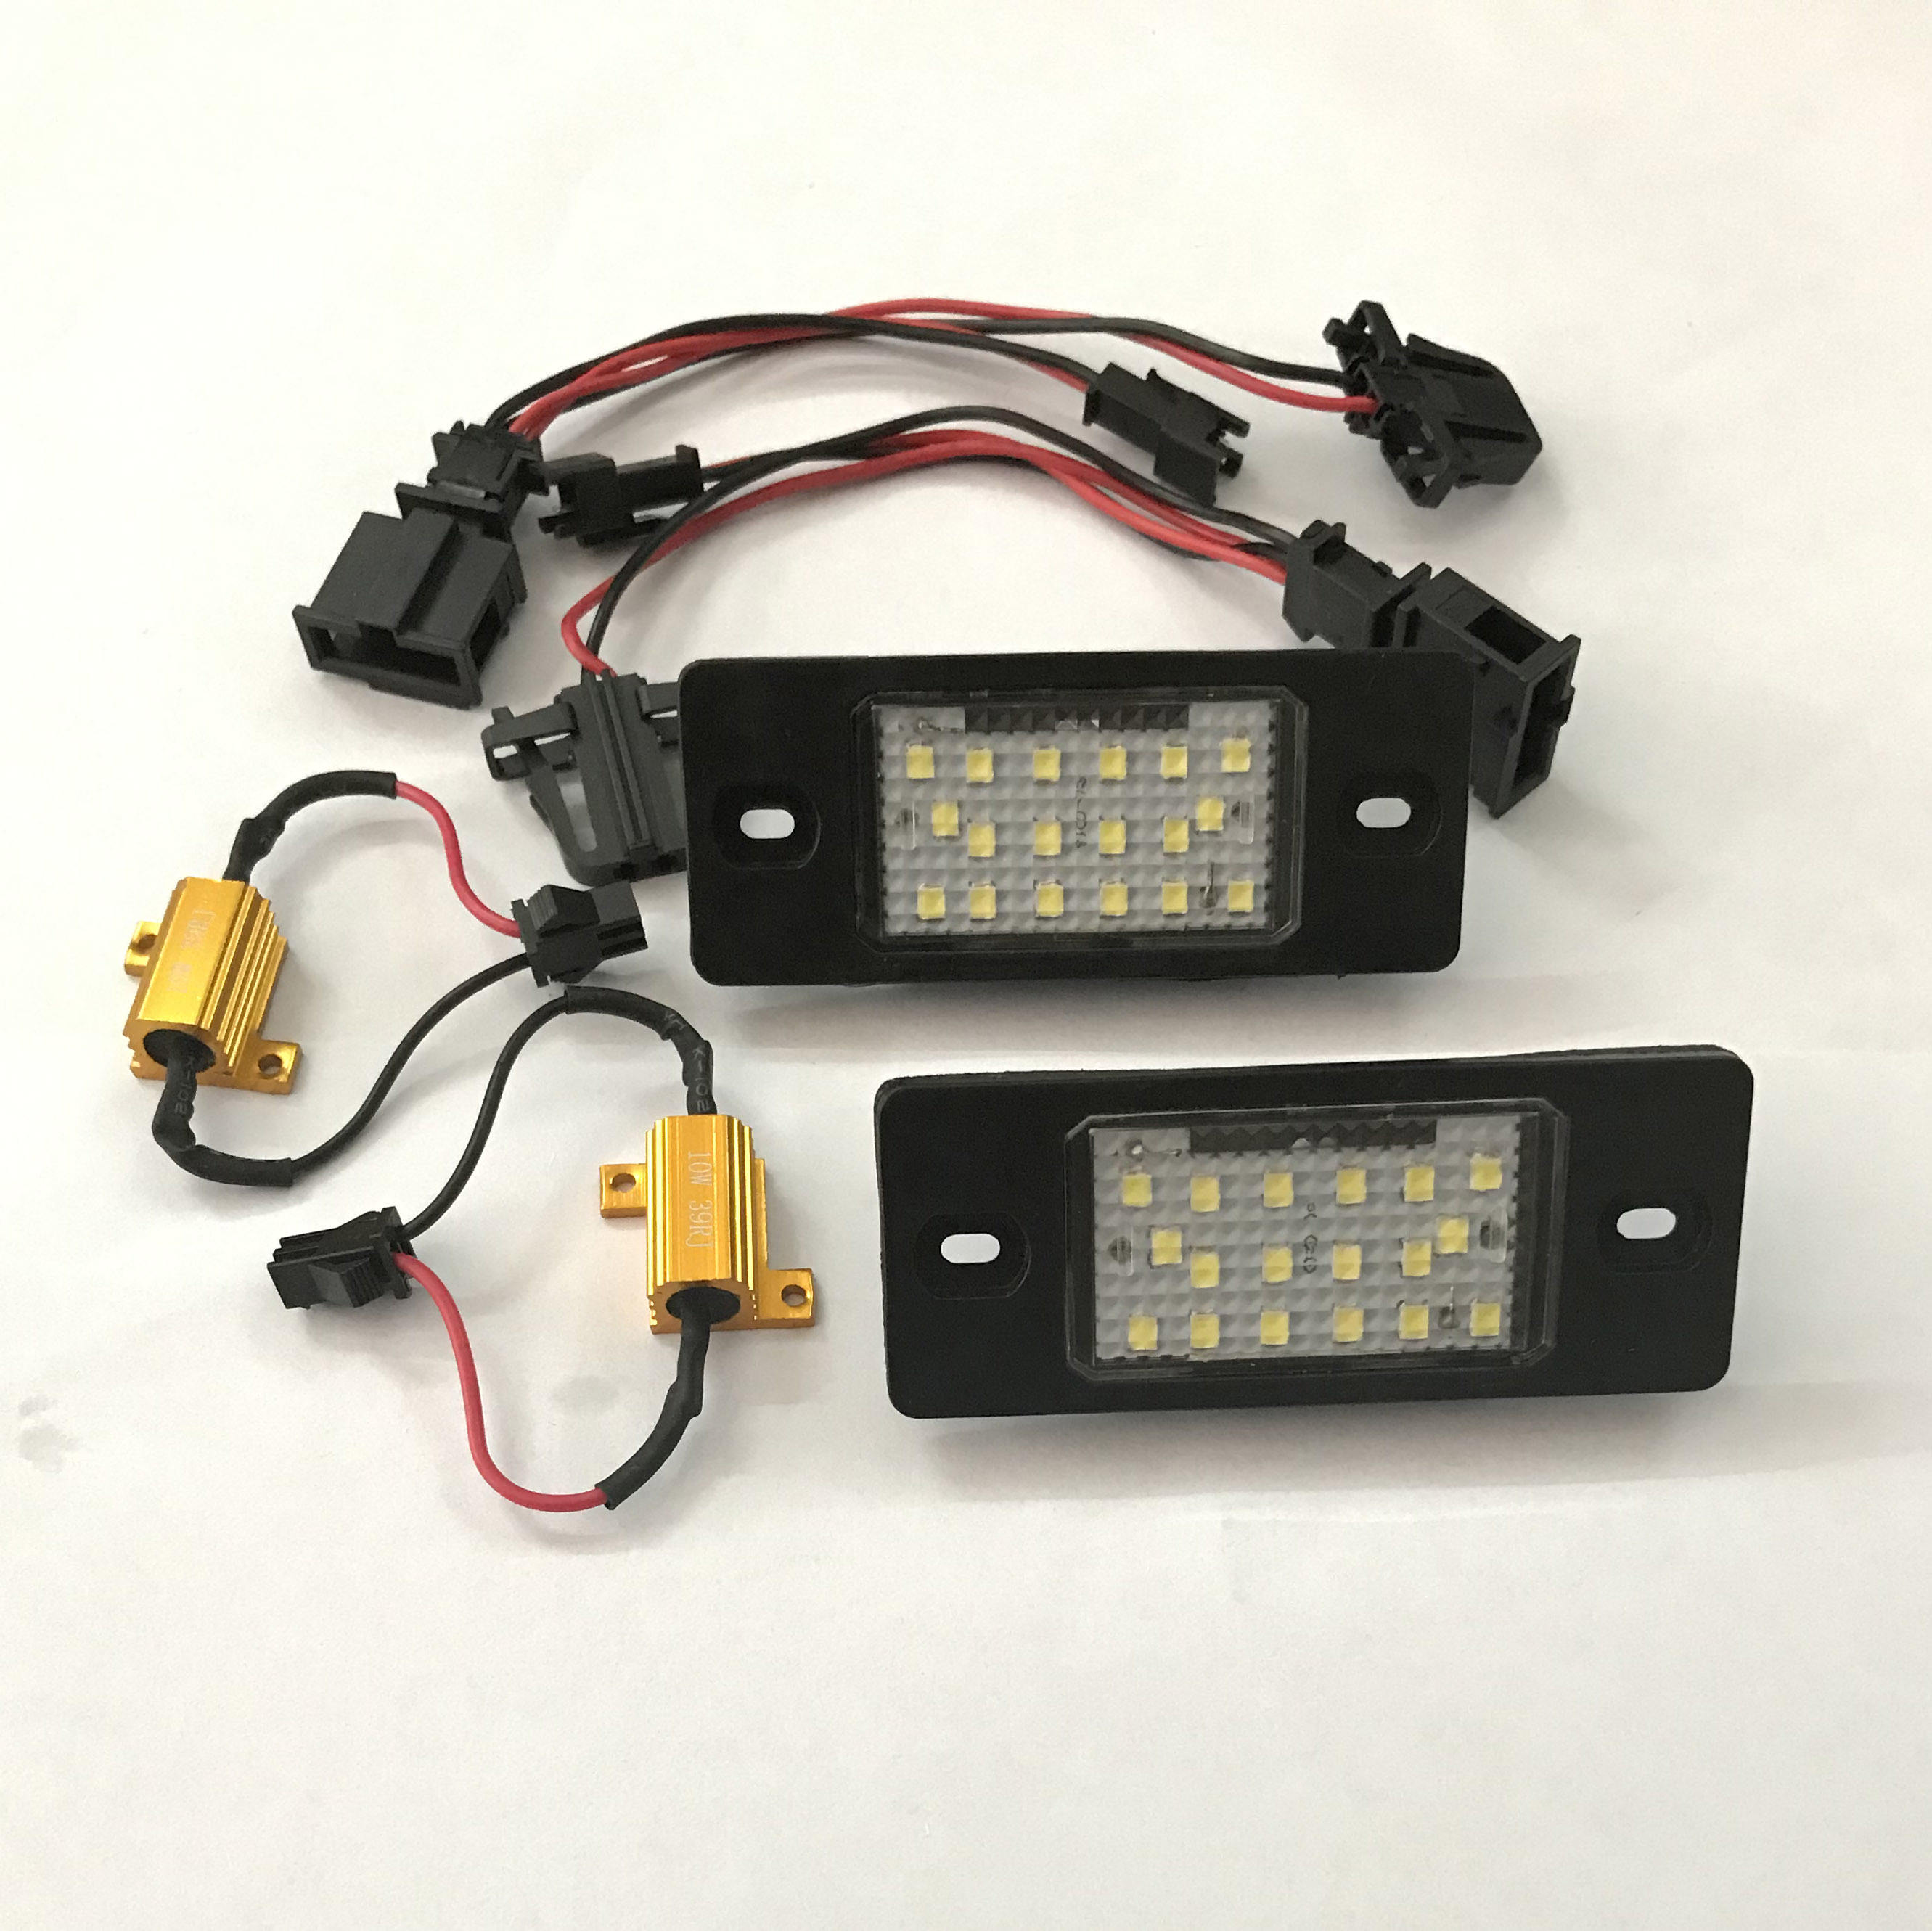 Auto Spare canbus Parts 18SMD LED License Plate Light Lamp For PORSCHE Cayenne s/VW Touareg